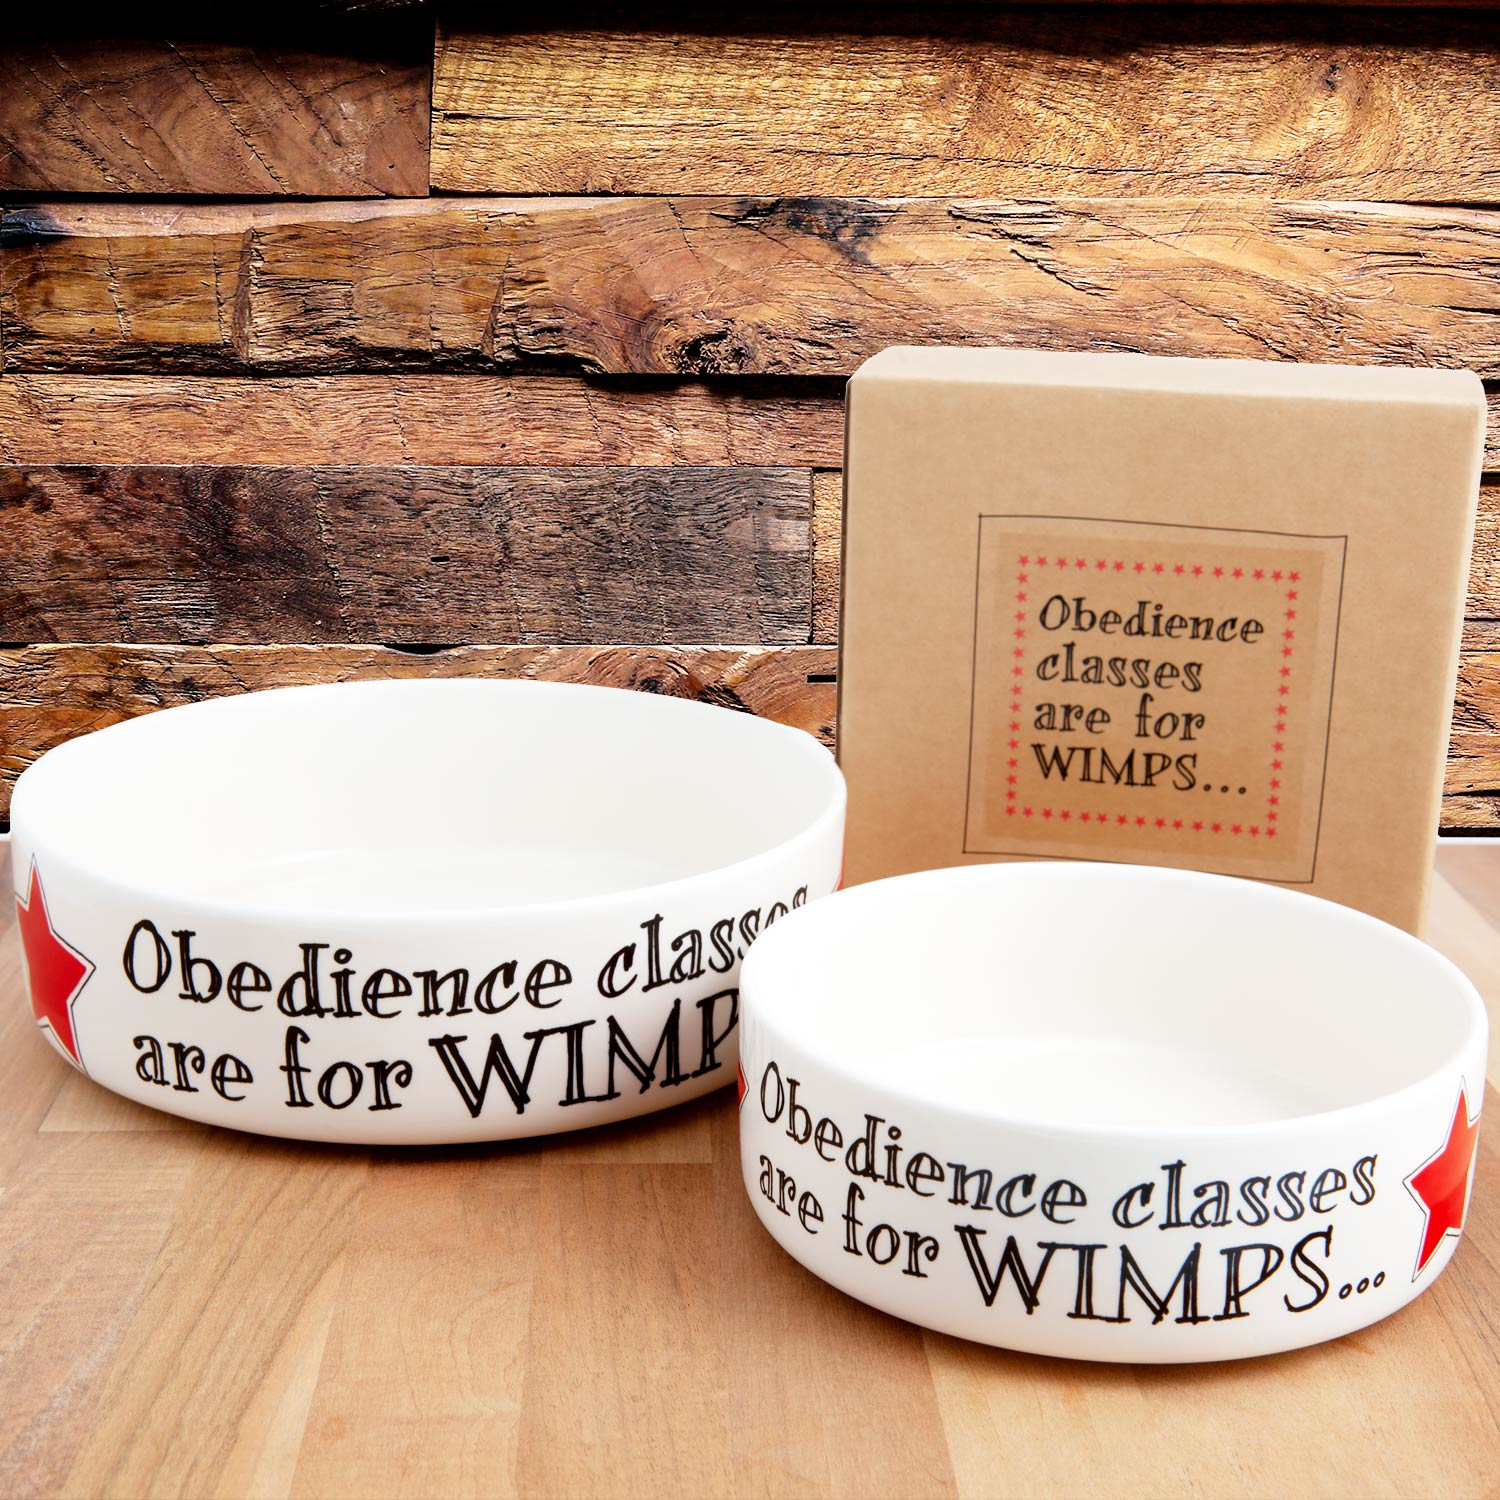 Dog Lover Gifts available at Dog Krazy Gifts - Obedience classes are for WIMPS earthenware dog bowl in 2 sizes - part of the Sweet William Designs range available from DogKrazyGifts.co.uk